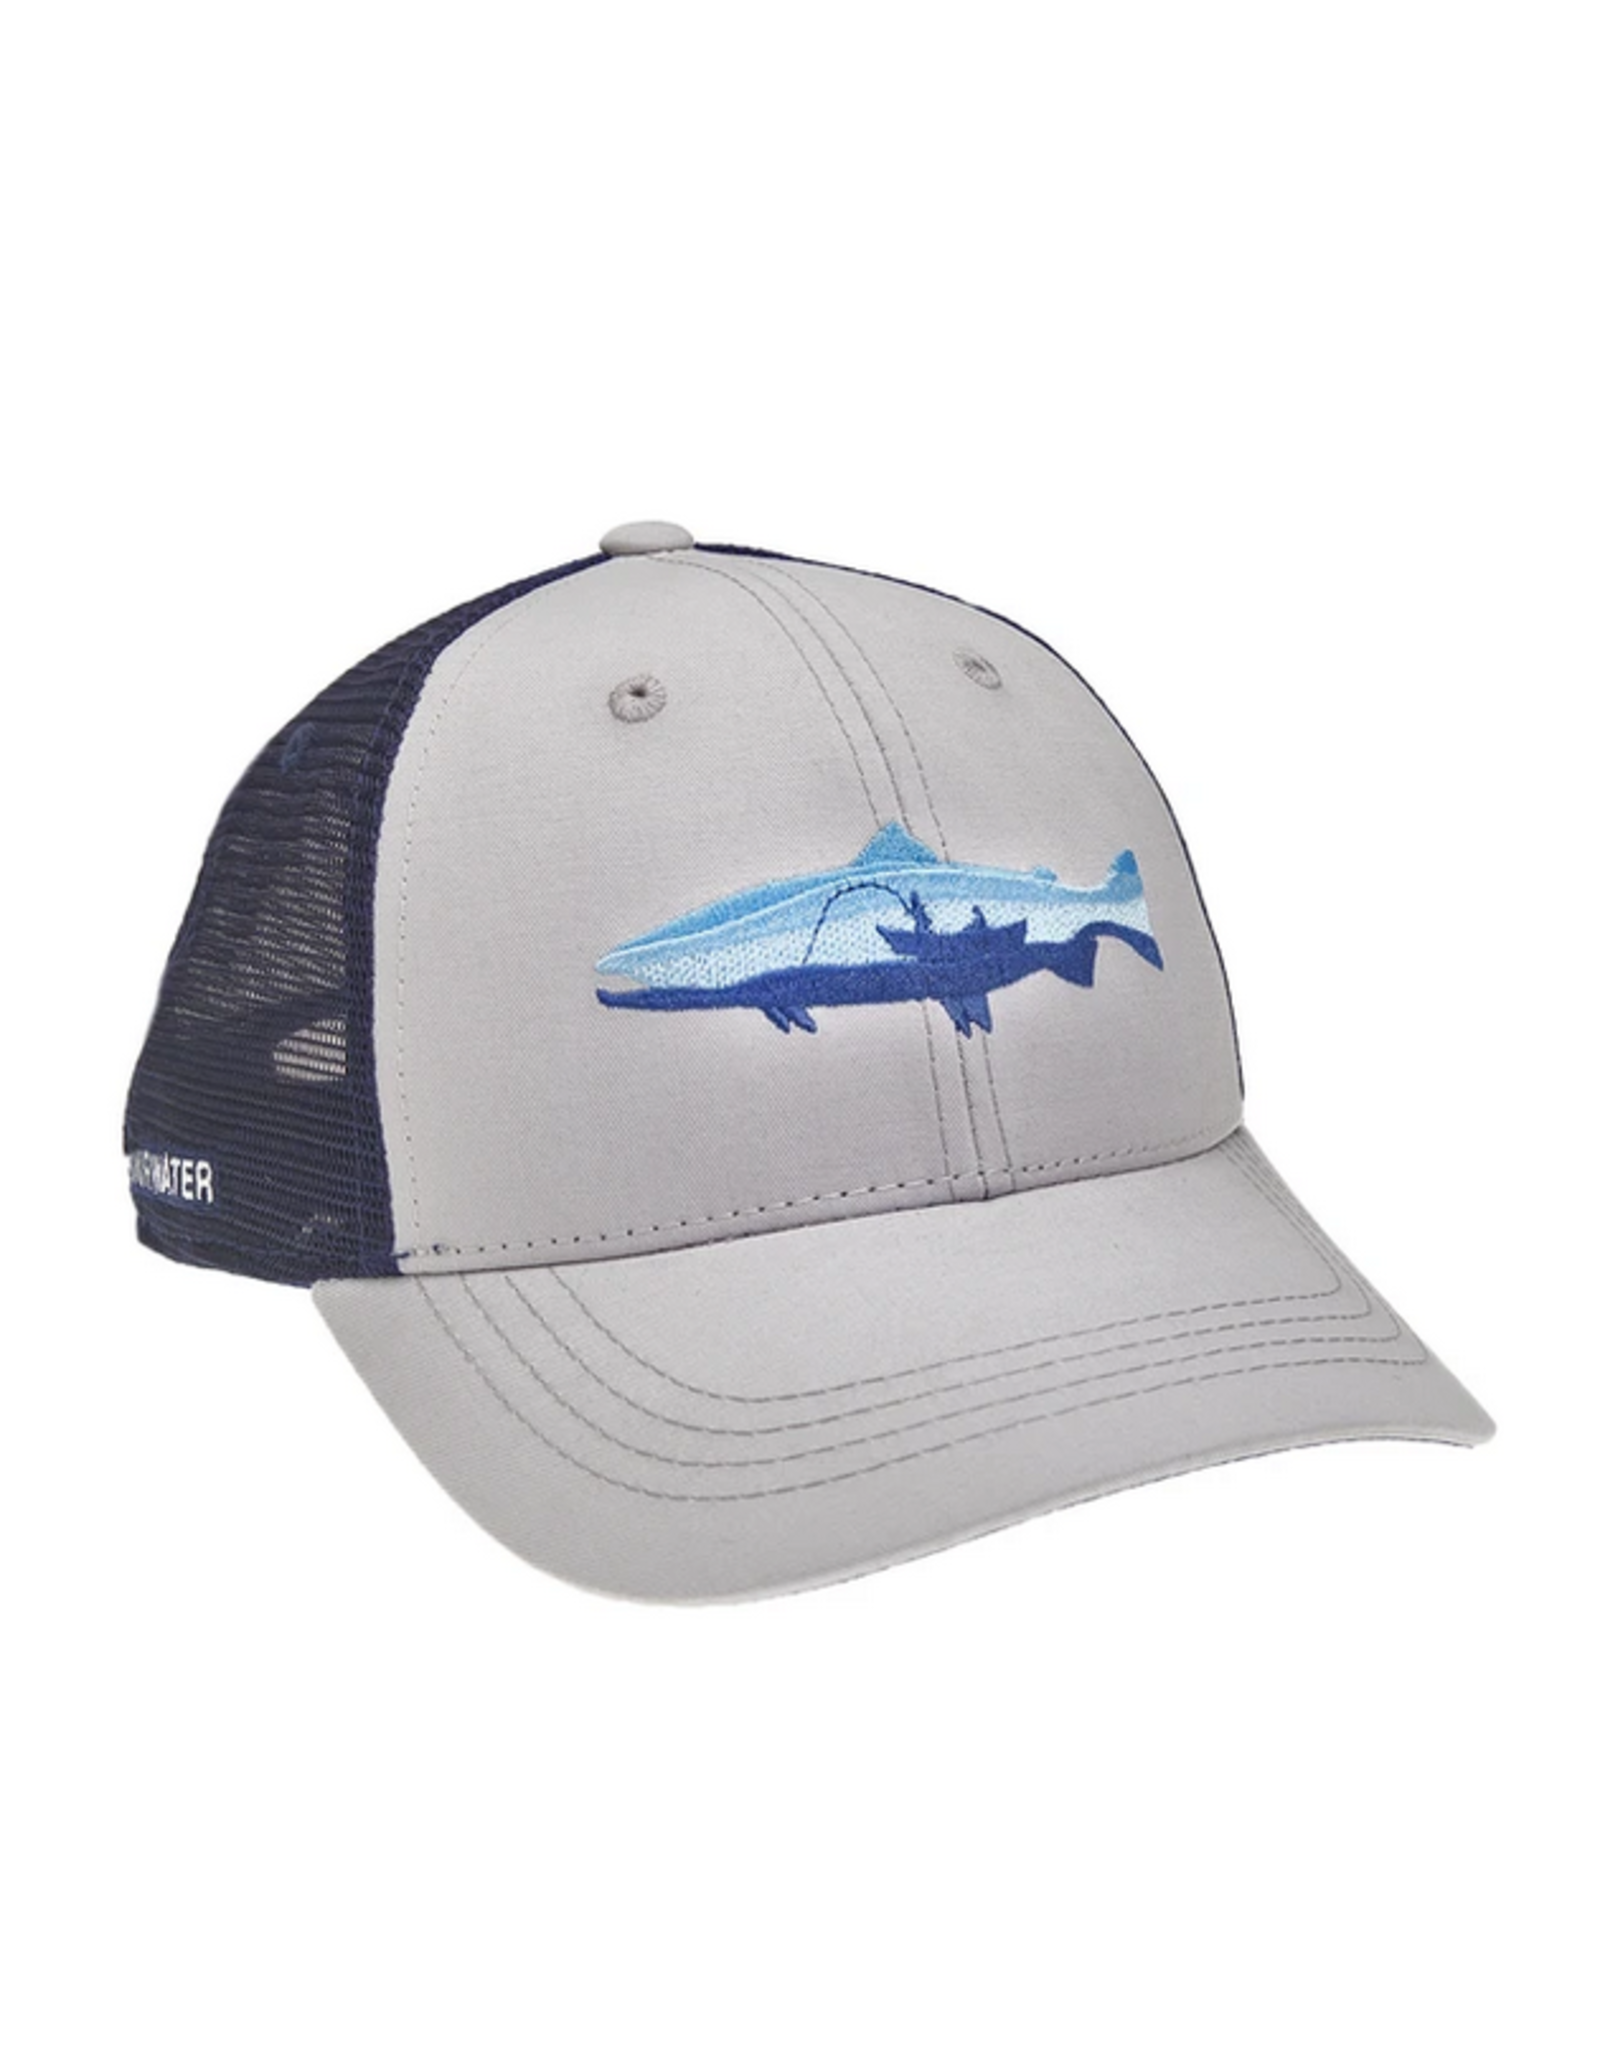 Rep Your Water Rep Your Water Drifter Trucker